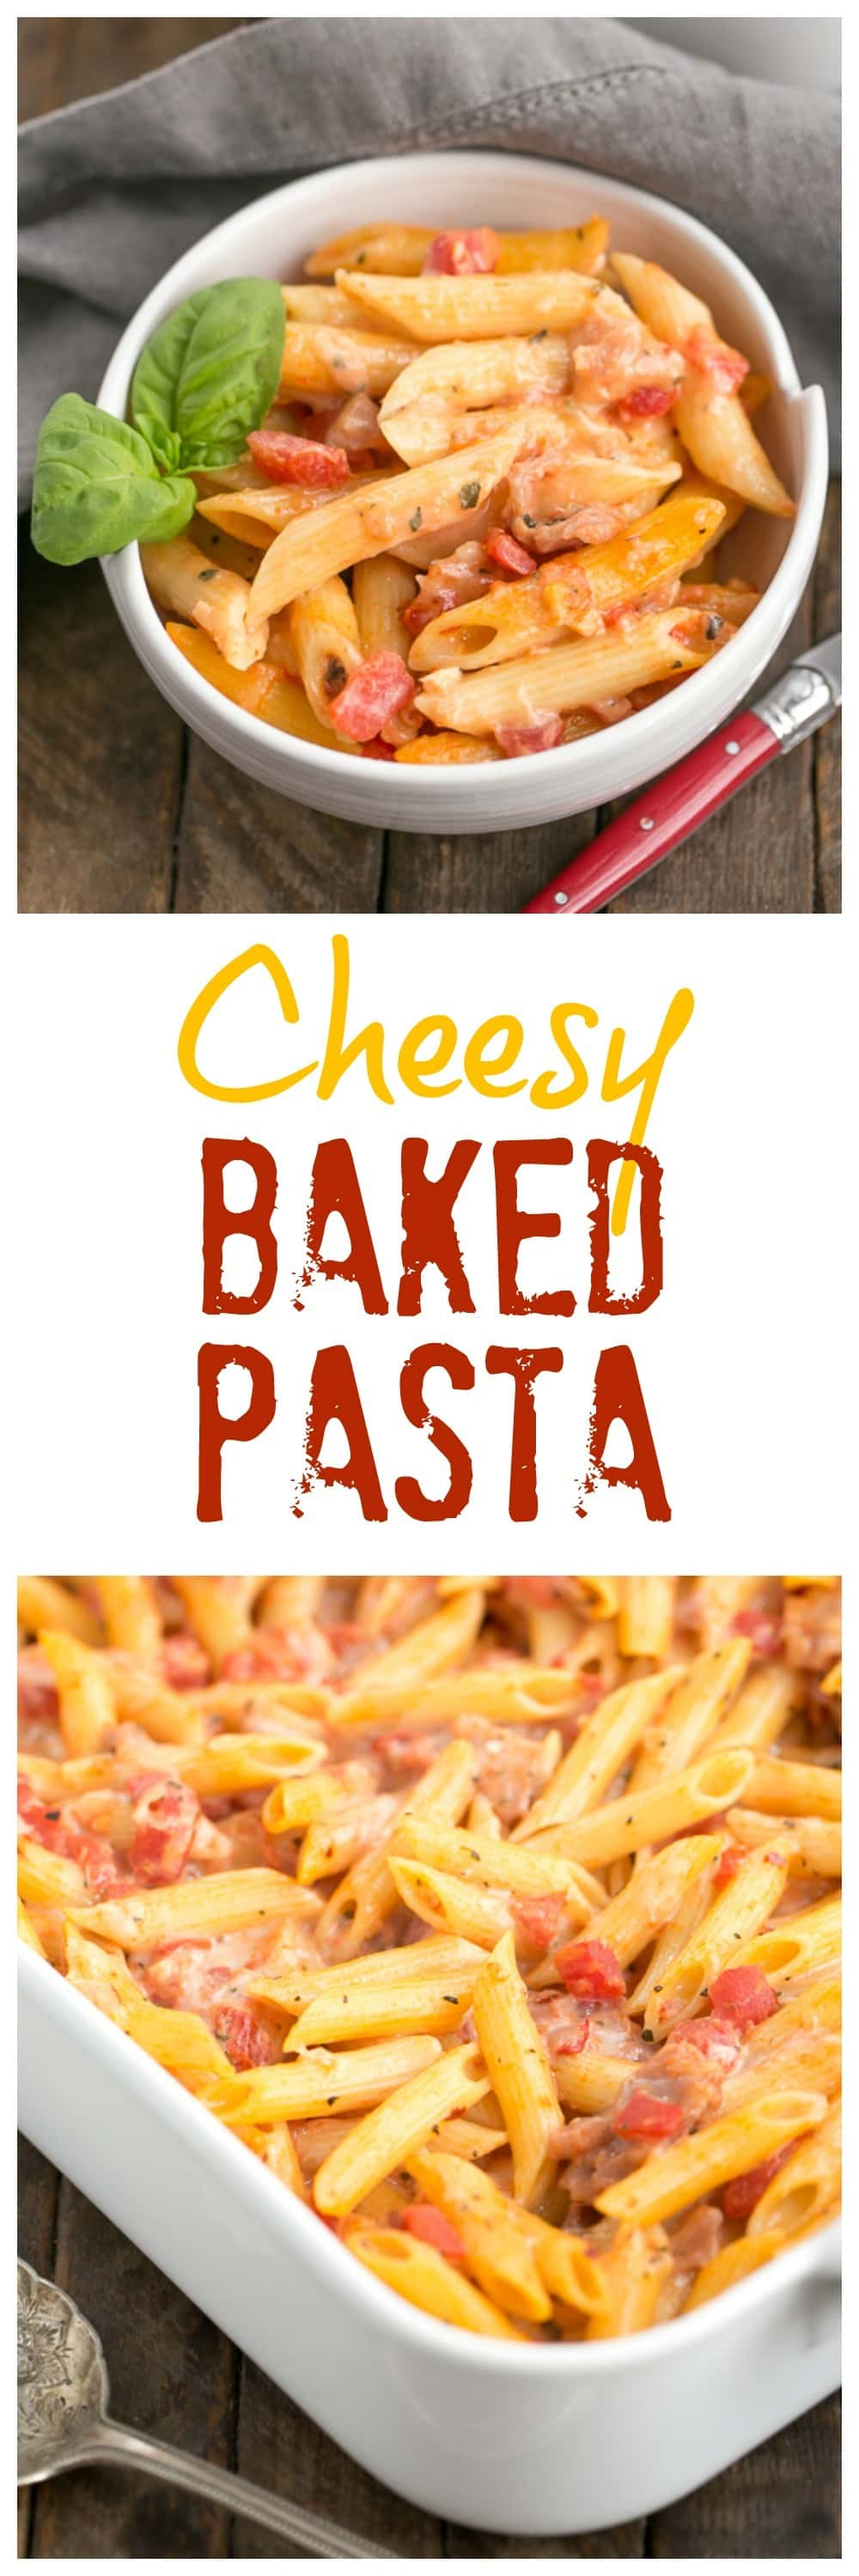 Cheesy Baked Pasta   Creamy pasta with 3 cheeses, basil and prosciutto